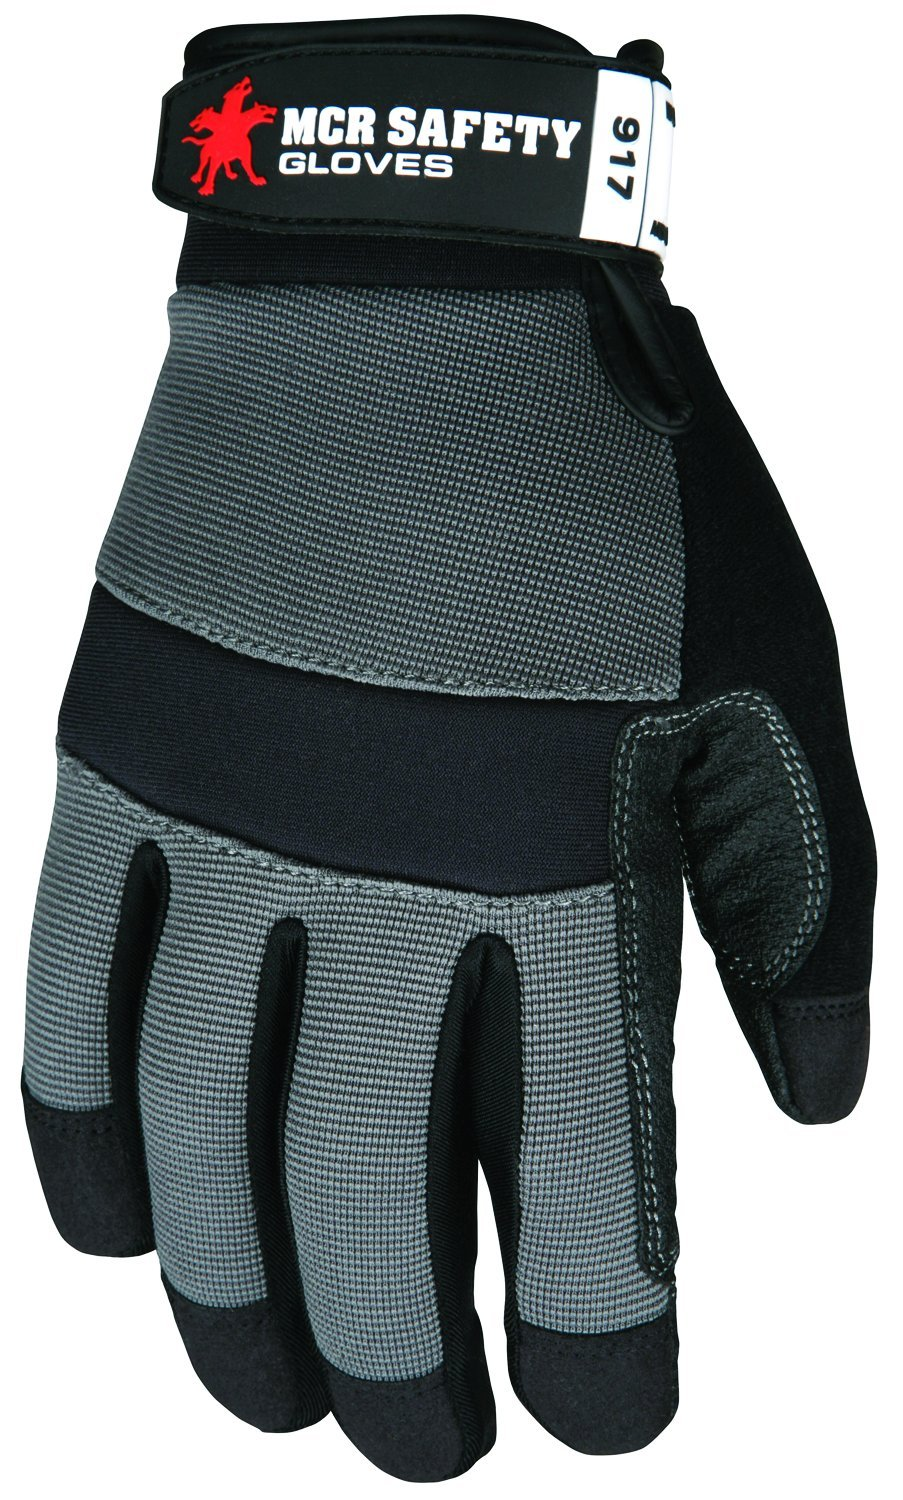 Rough Pvc Coated Material Reinforced Palm 3X-Large MCR Safety 917XXXL Multi-Task Gloves Adjustable Wrist Closure Dupont Kevlar Lined Gray Spandex Back Synthetic Leather Palm 1-Pair